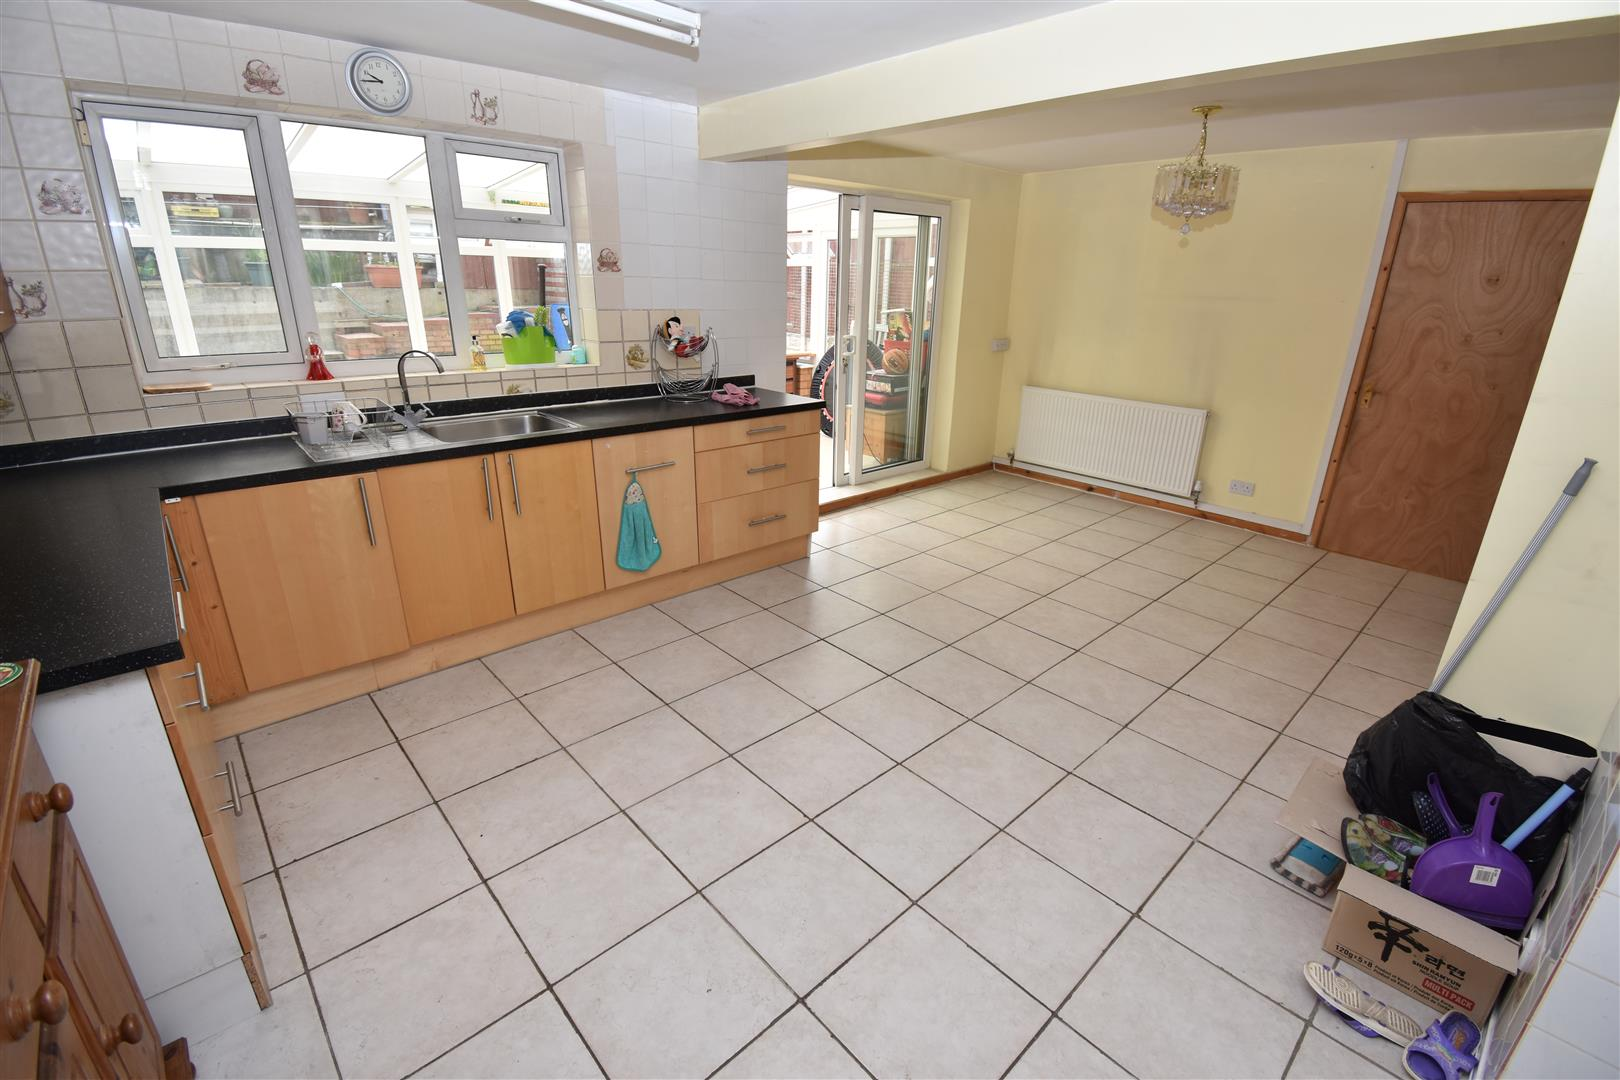 5 bed house for sale in Johnson Close, Hodge Hill, Birmingham 6